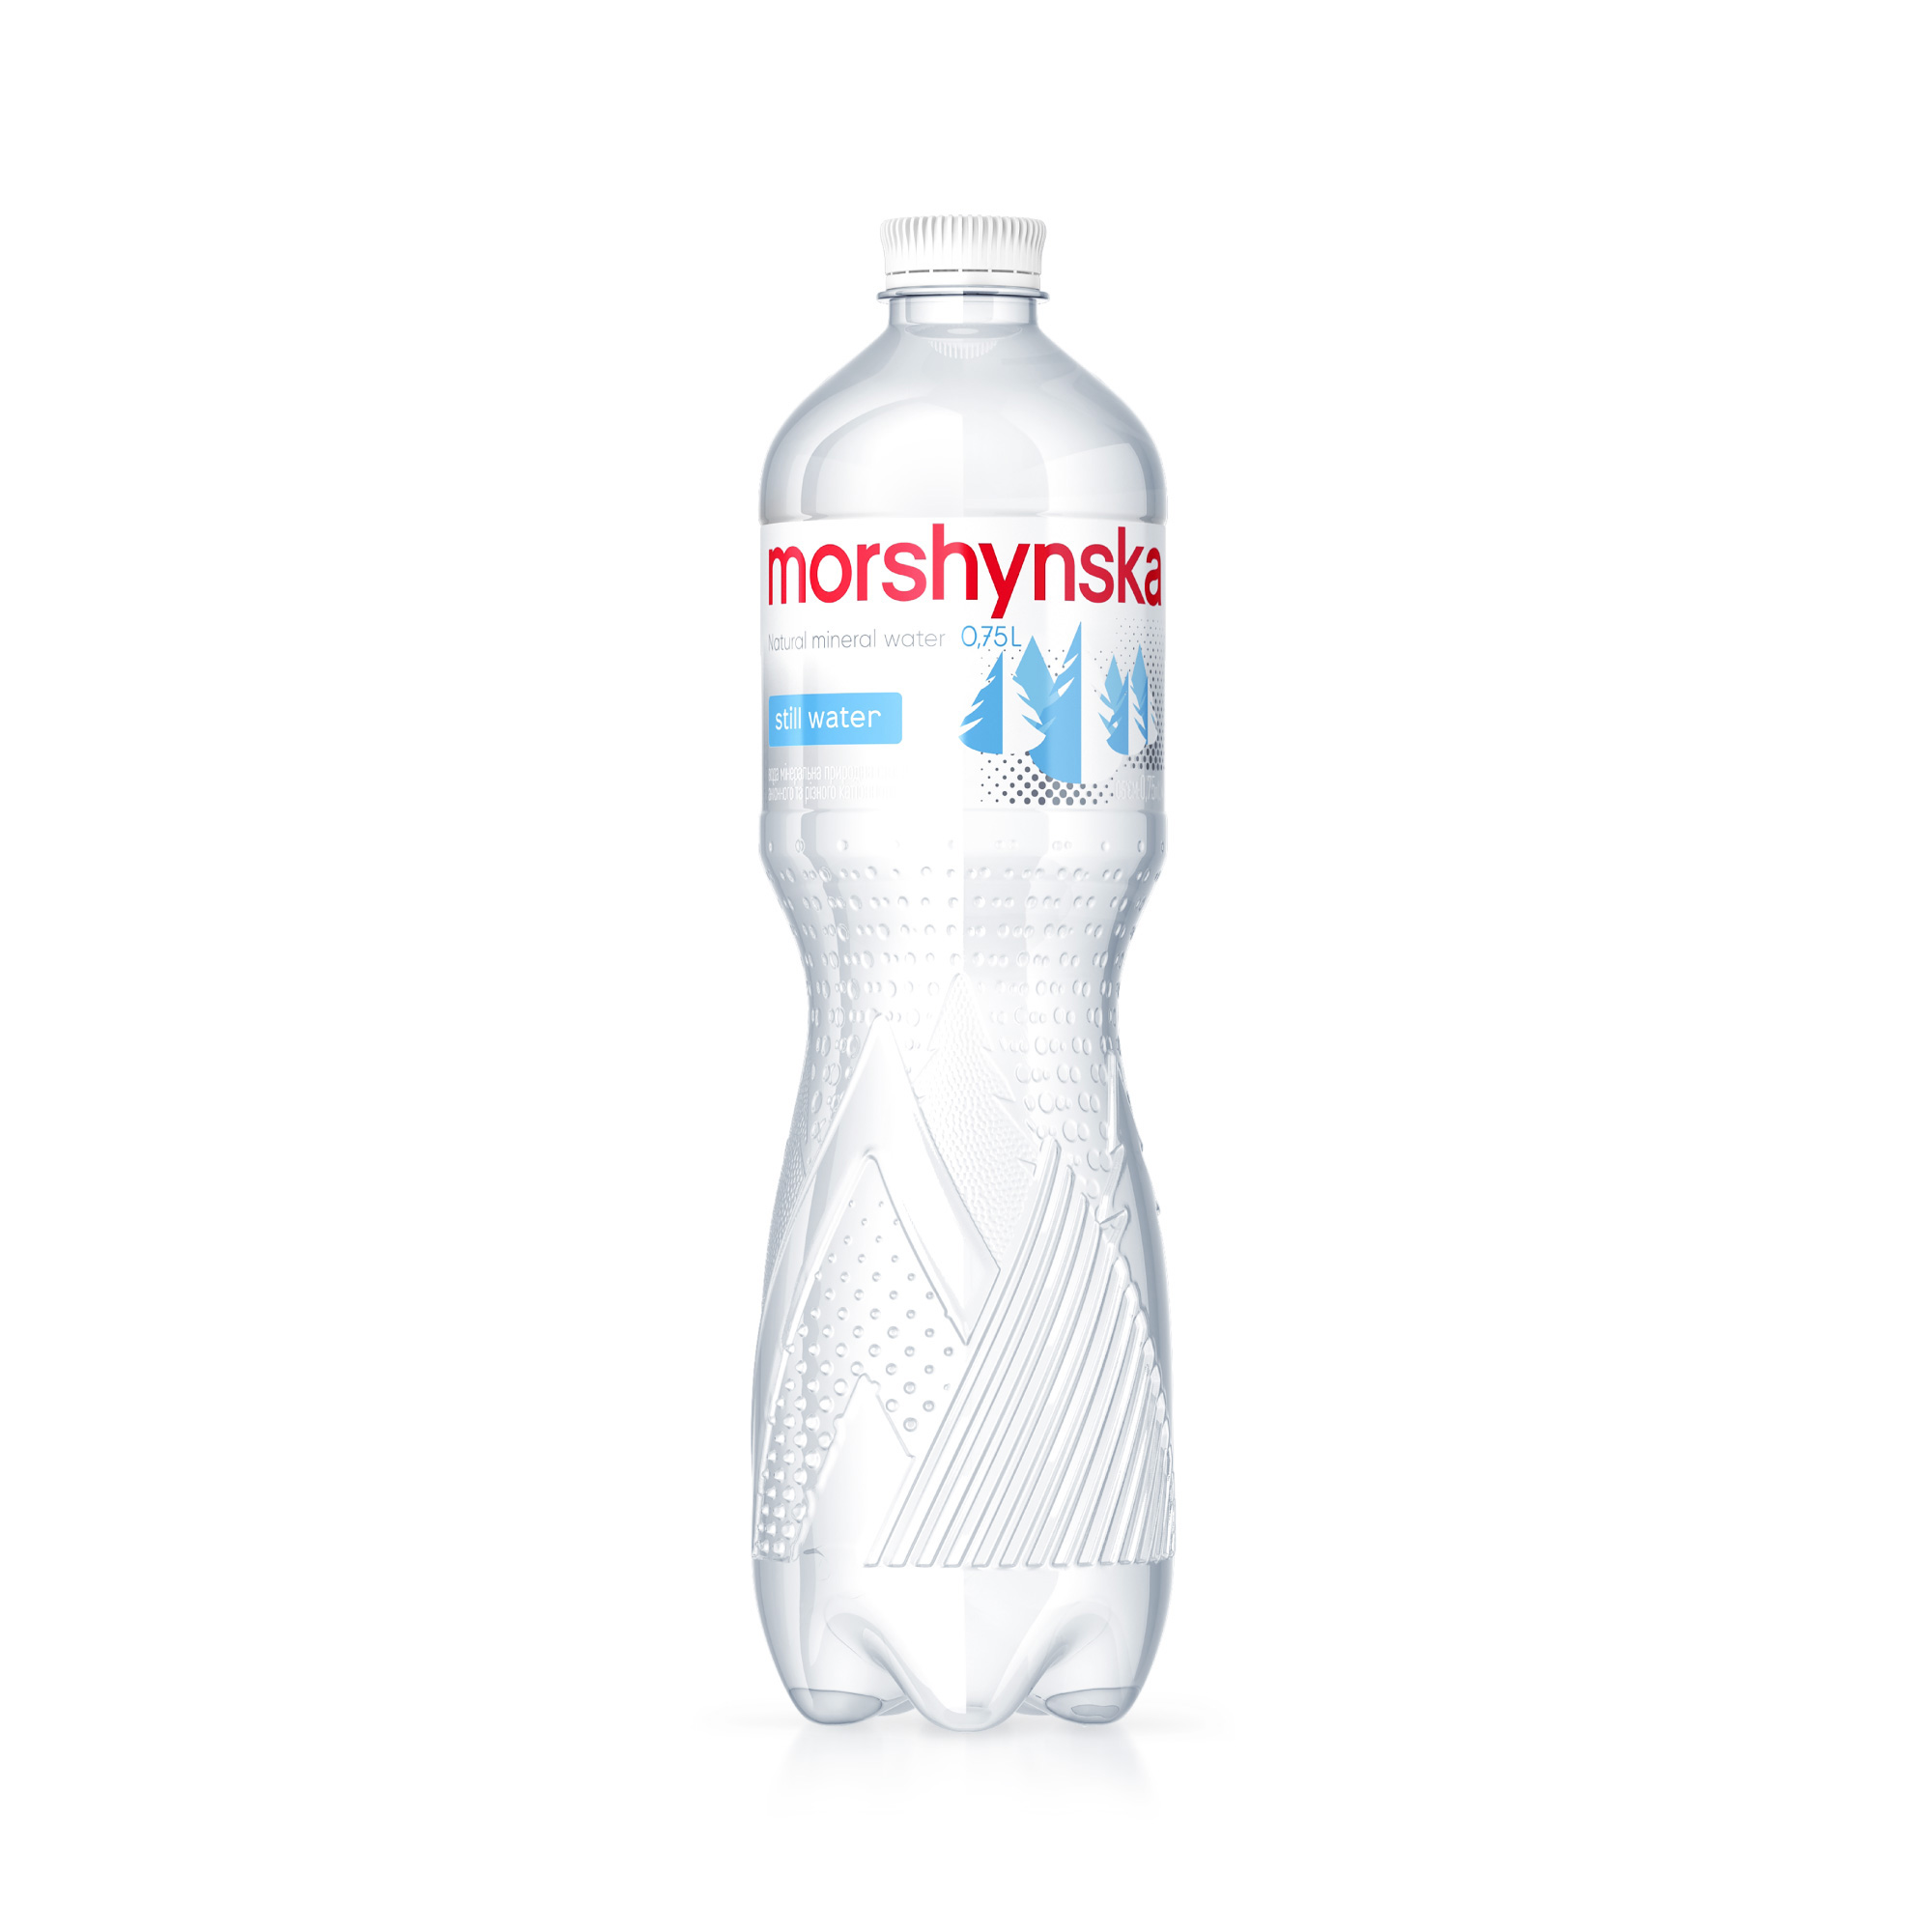 New Logo and Packaging for Morshynska by Reynolds and Reyner